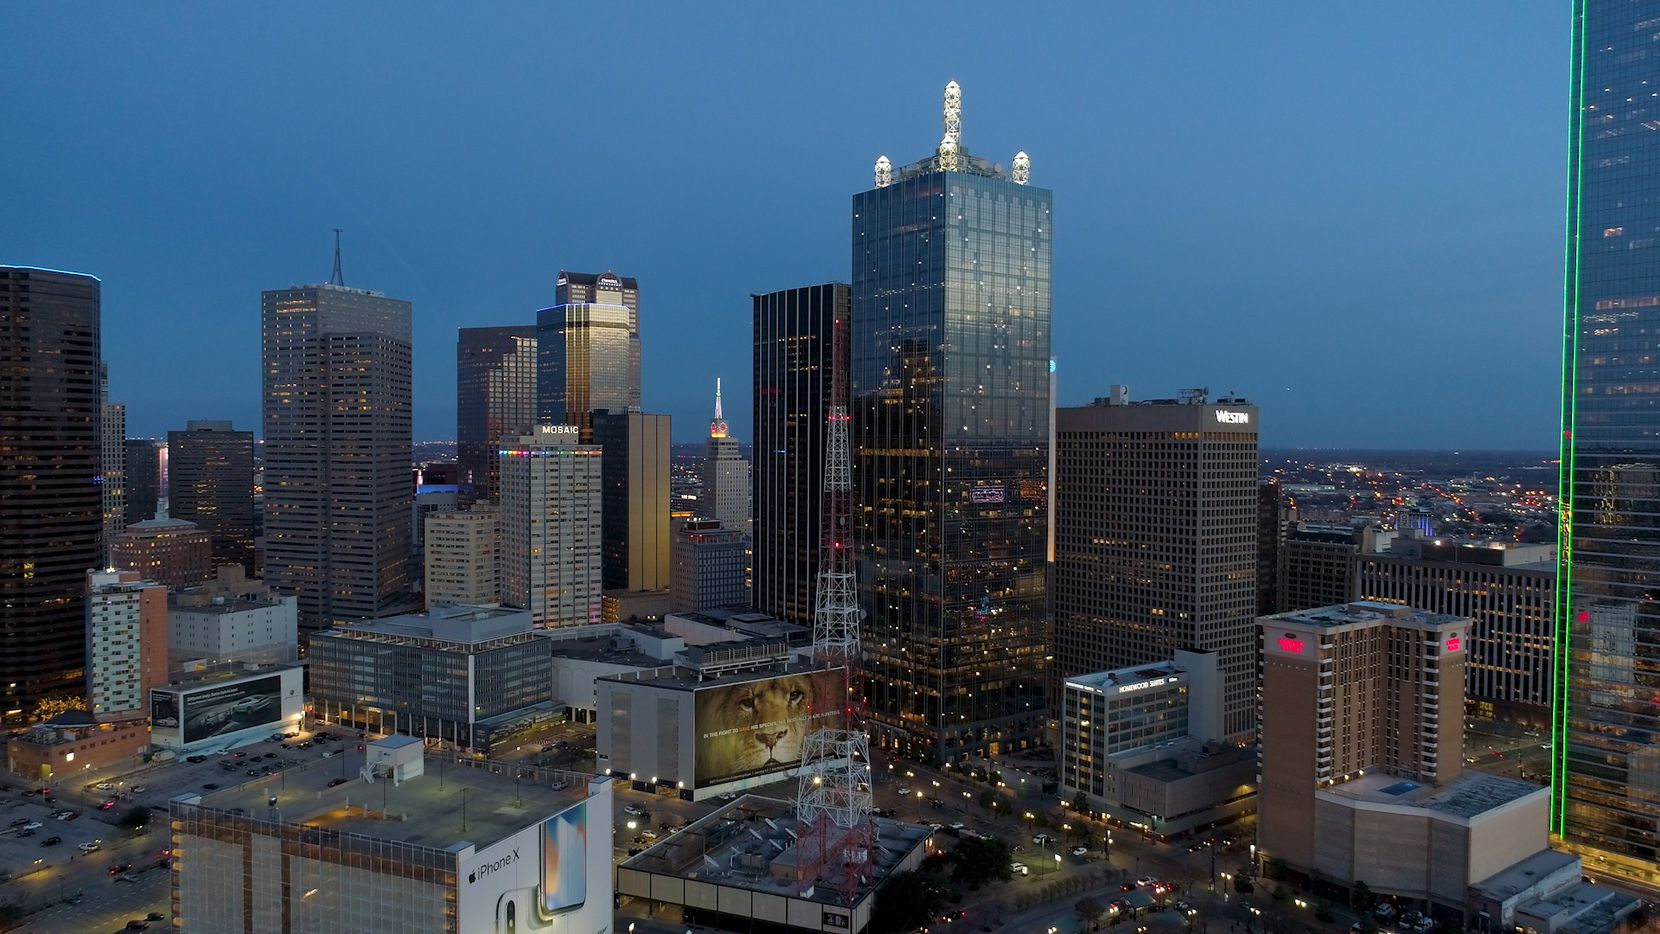 With its decorative towers on the roof, Renaissance Tower is one of the best known buildings on Dallas' skyline.